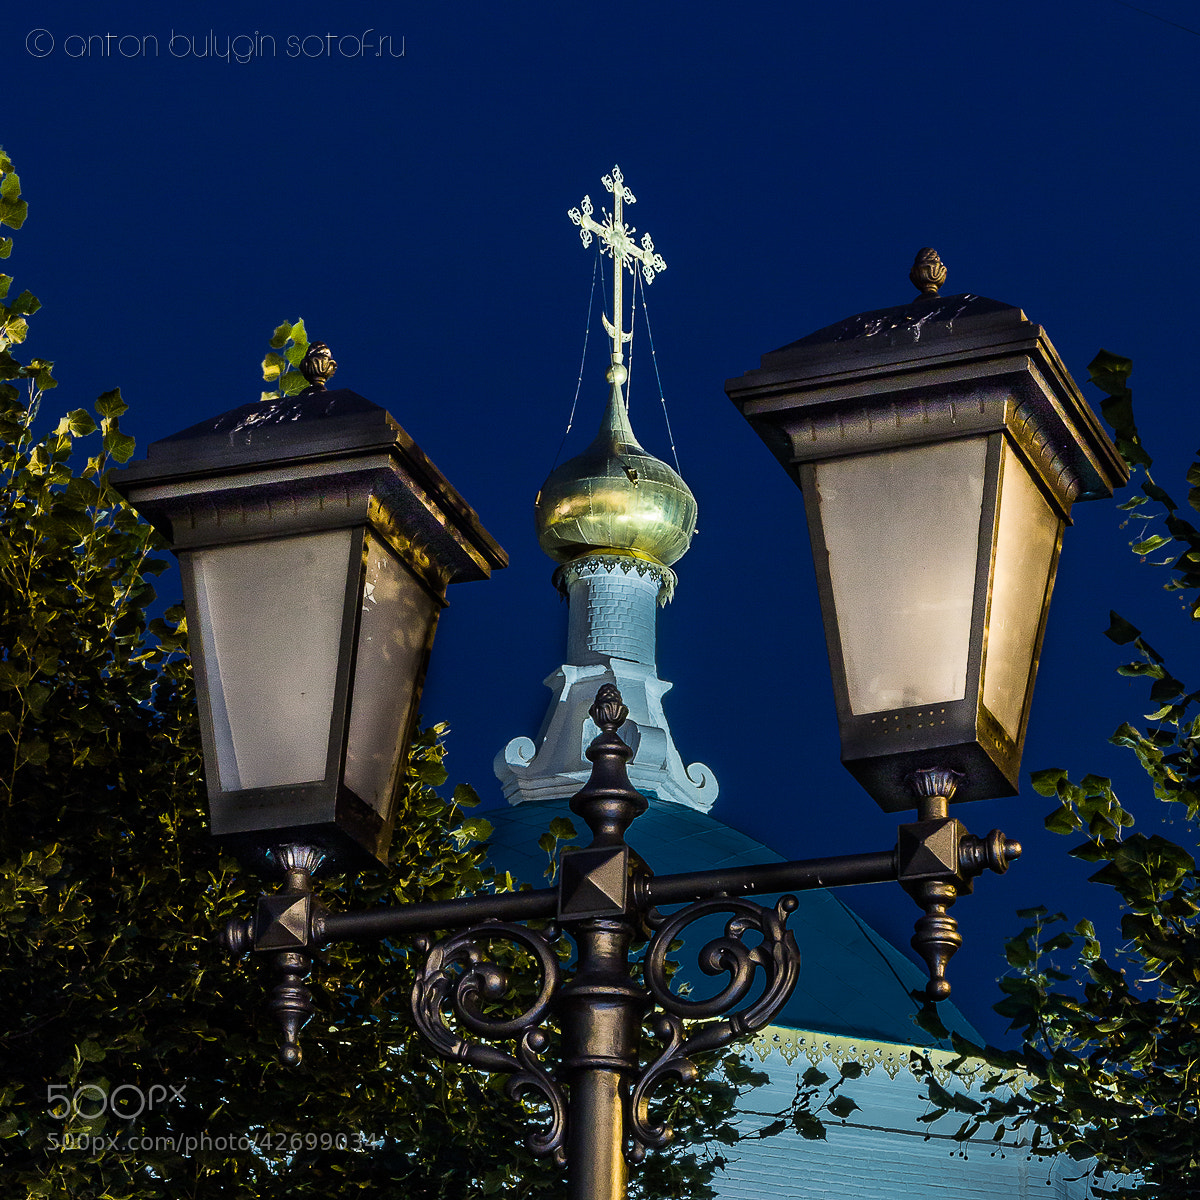 Photograph evening lamp by Anton Bulygin on 500px